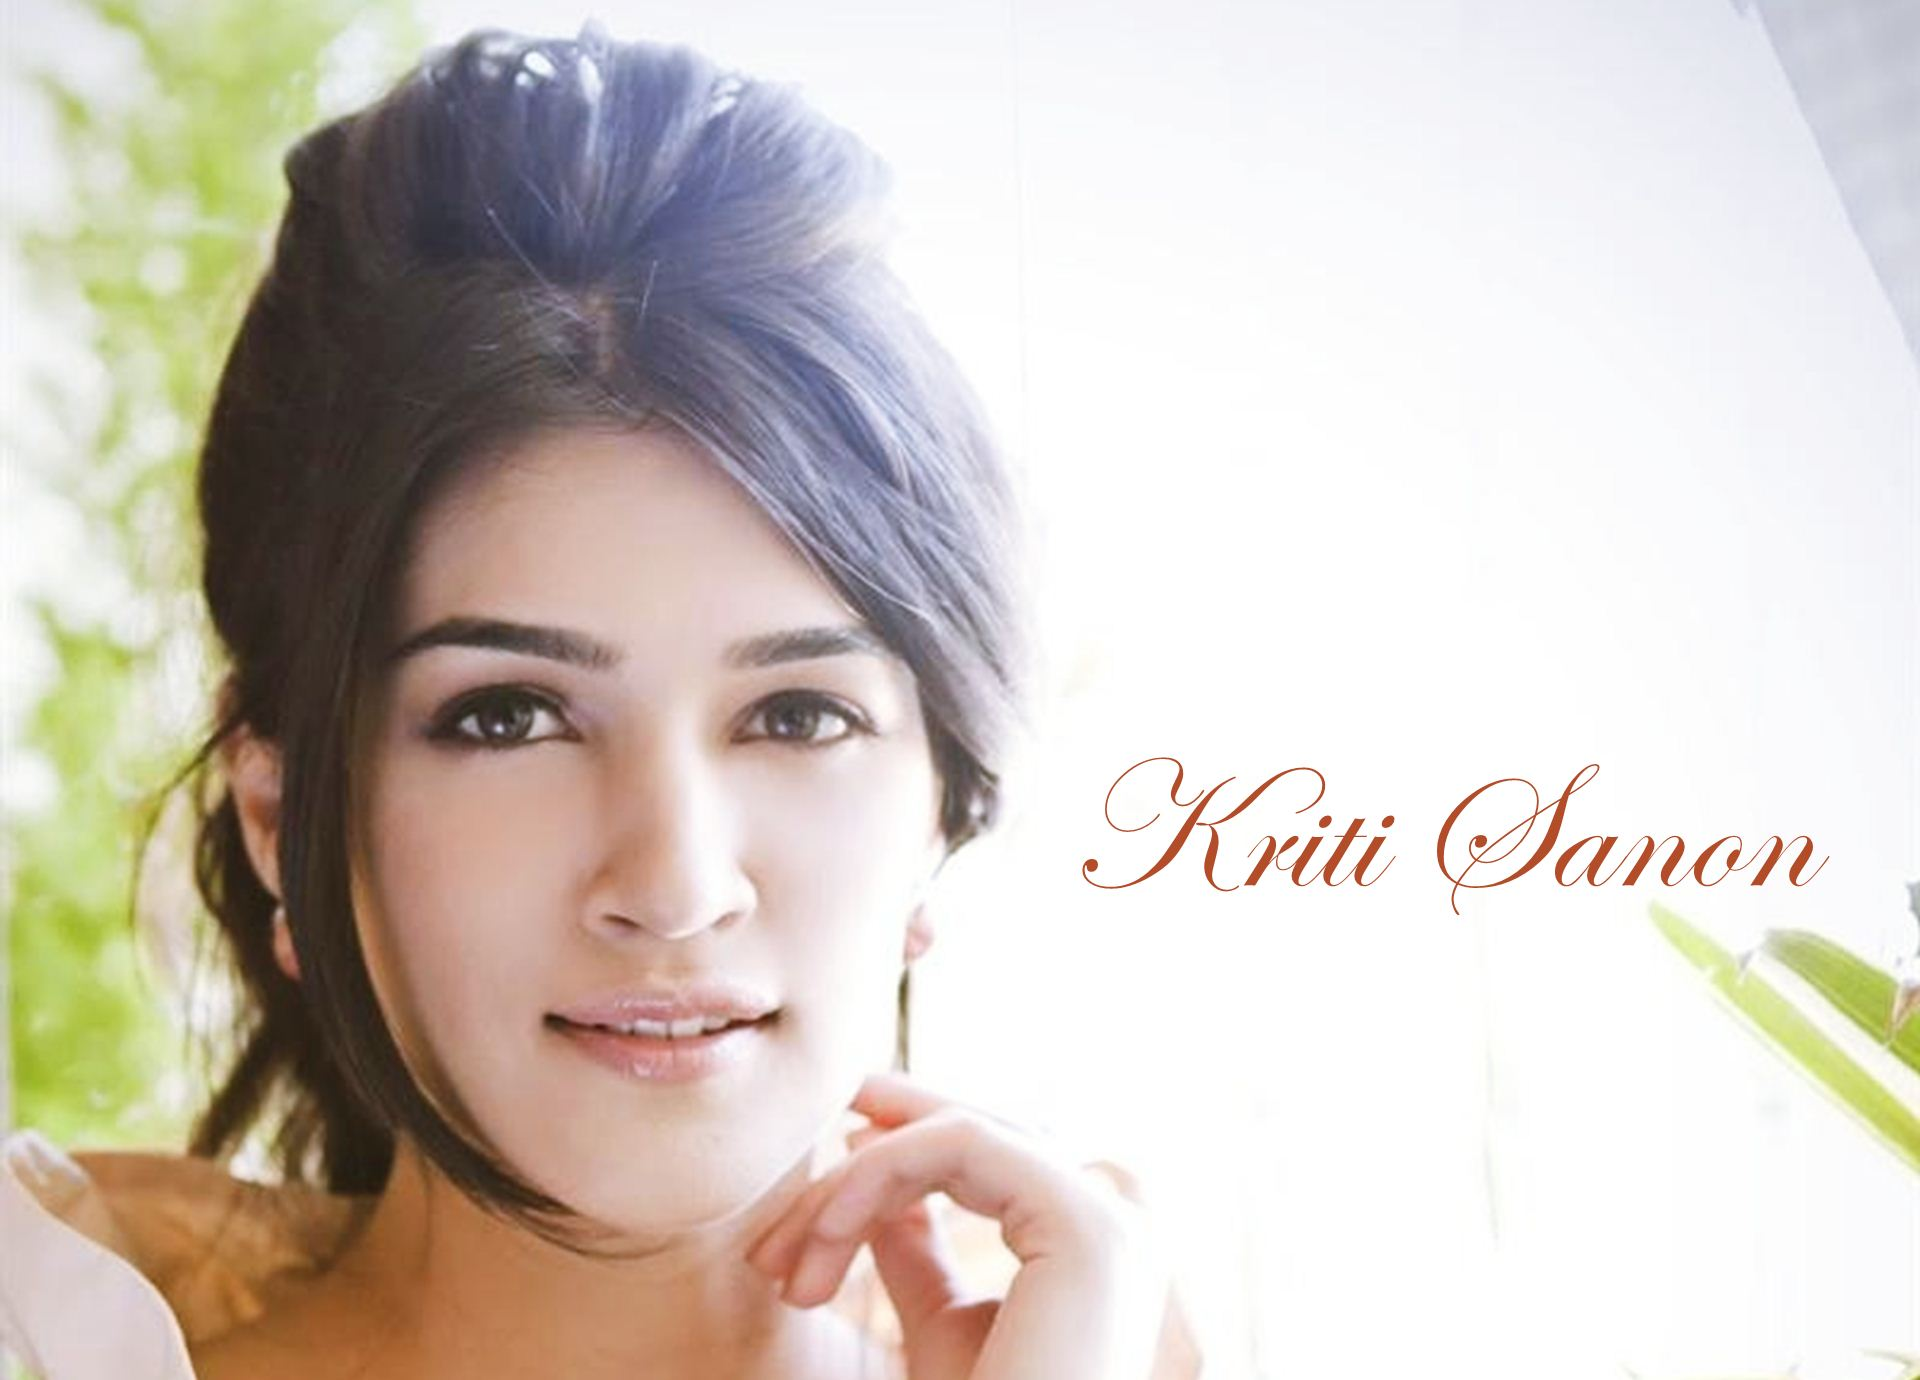 kriti sanon full hd wallpaper